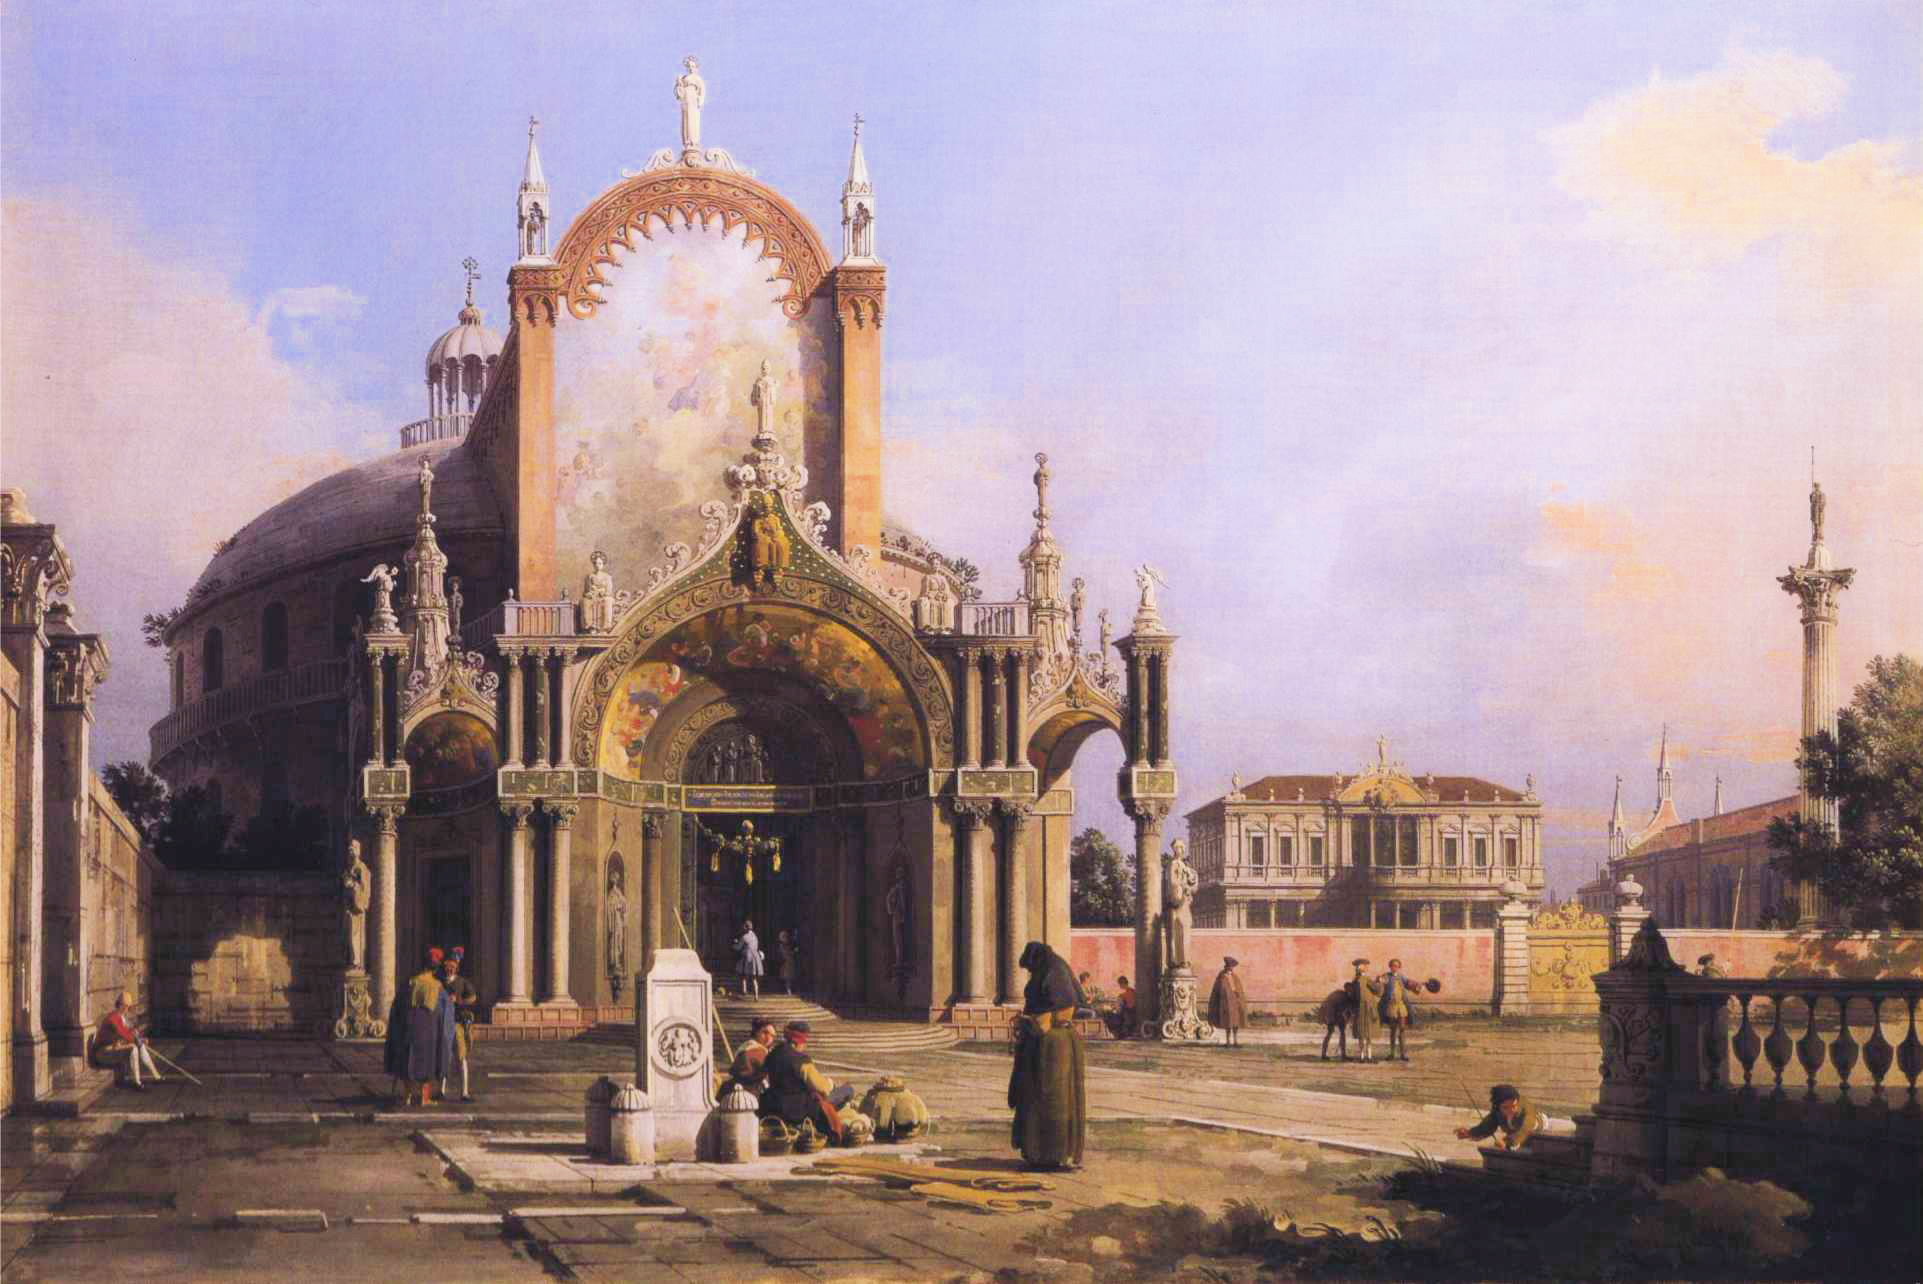 http://upload.wikimedia.org/wikipedia/commons/7/75/Canaletto_-_Capriccio_of_a_Round_Church_with_an_Elaborate_Gothic_Portico_in_a_Piazza%2C_a_Palladian_Piazza_and_a_Gothic_Church_Beyond.JPG